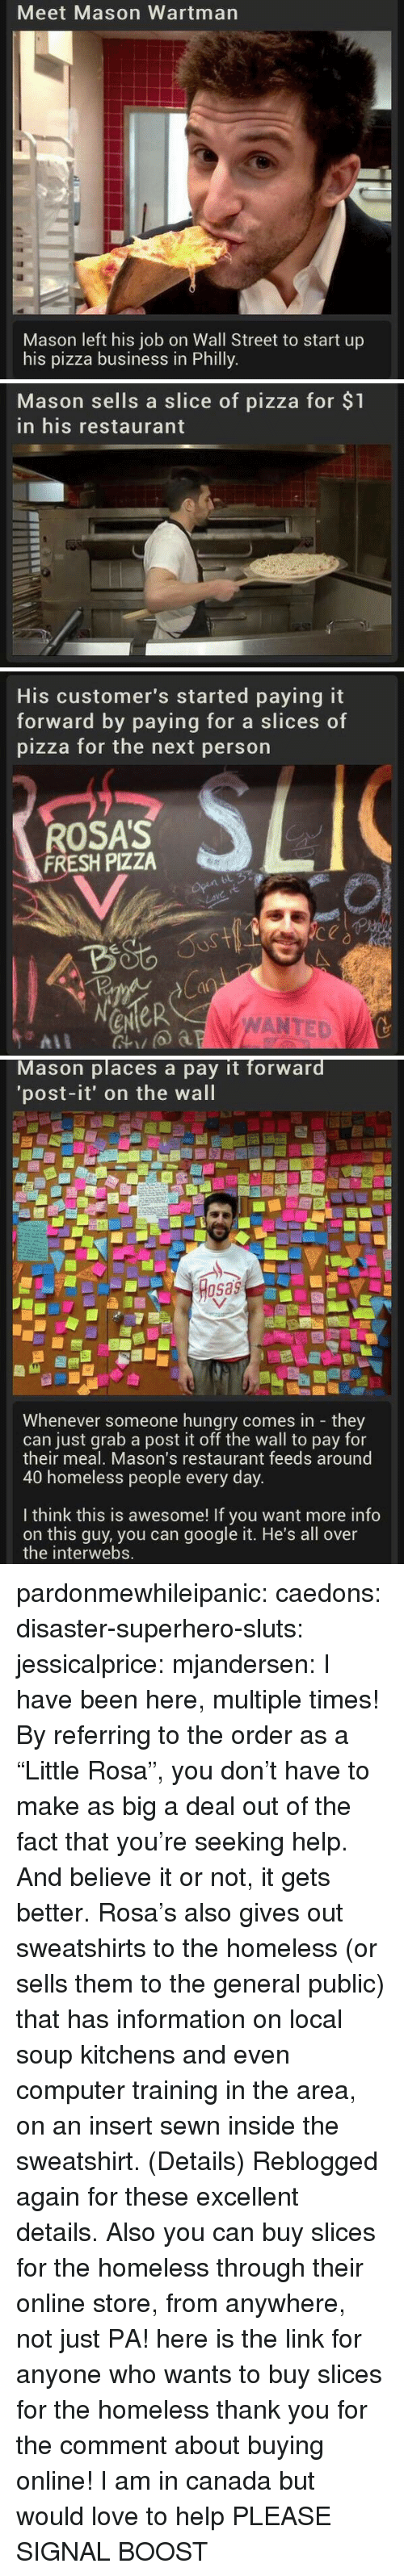 """The General: Meet Mason Wartman  Mason left his job on Wall Street to start up  his pizza business in Philly   Mason sells a slice of pizza for $1  in his restaurant   His customer's started paying it  forward by paying for a slice  pizza for the next person  s of  ROSA'S  FRESH PIZZA  4o  a0  eNeR  WANTED   Mason places a pay it forward  'post-it' on the wall  osas  Whenever someone hungry comes in they  can just grab a post it off the wall to pay for  their meal, Mason's restaurant feeds around  40 homeless people every day  I think this is awesome! If you want more info  on this guy, you can google it. He's all over  the interwebs. pardonmewhileipanic:  caedons:  disaster-superhero-sluts:  jessicalprice:  mjandersen:  I have been here, multiple times!  By referring to the order as a """"Little Rosa"""", you don't have to make as big a deal out of the fact that you're seeking help. And believe it or not, it gets better. Rosa's also gives out sweatshirts to the homeless (or sells them to the general public) that has information on local soup kitchens and even computer training in the area, on an insert sewn inside the sweatshirt. (Details)  Reblogged again for these excellent details.  Also you can buy slices for the homeless through their online store, from anywhere, not just PA!  here is the link for anyone who wants to buy slices for the homeless  thank you for the comment about buying online! I am in canada but would love to help PLEASE SIGNAL BOOST"""